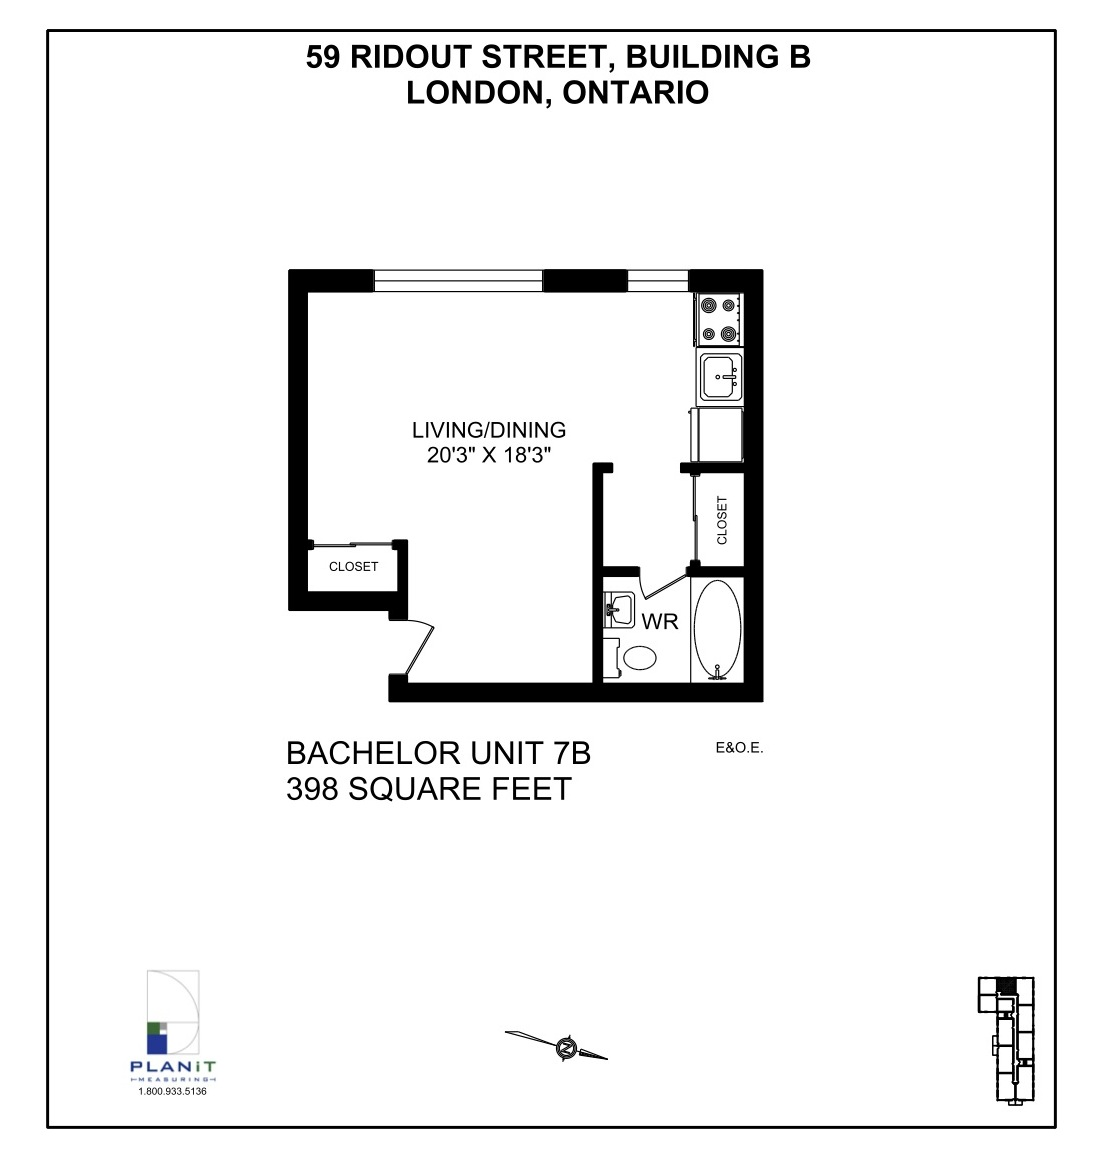 Floor plan of a bachelor flat floorplans for apartments for Bachelor flat plans